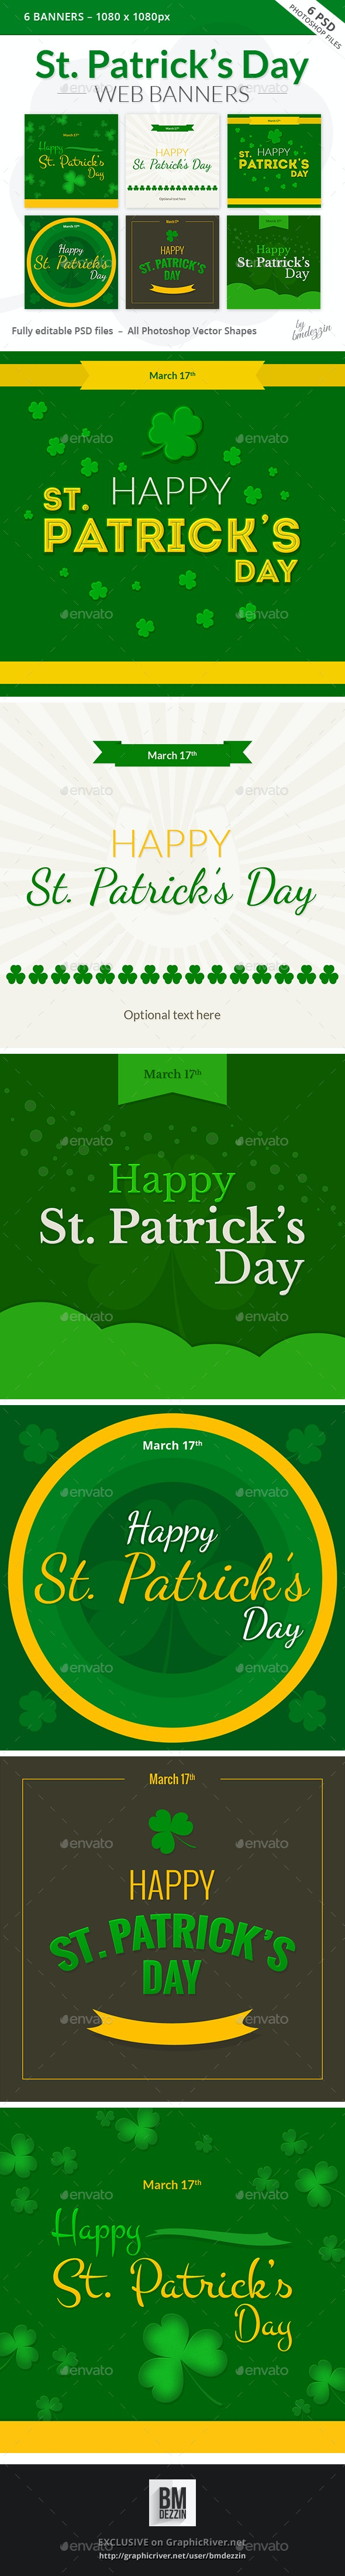 St Patricks Day Web Banners - Banners & Ads Web Elements